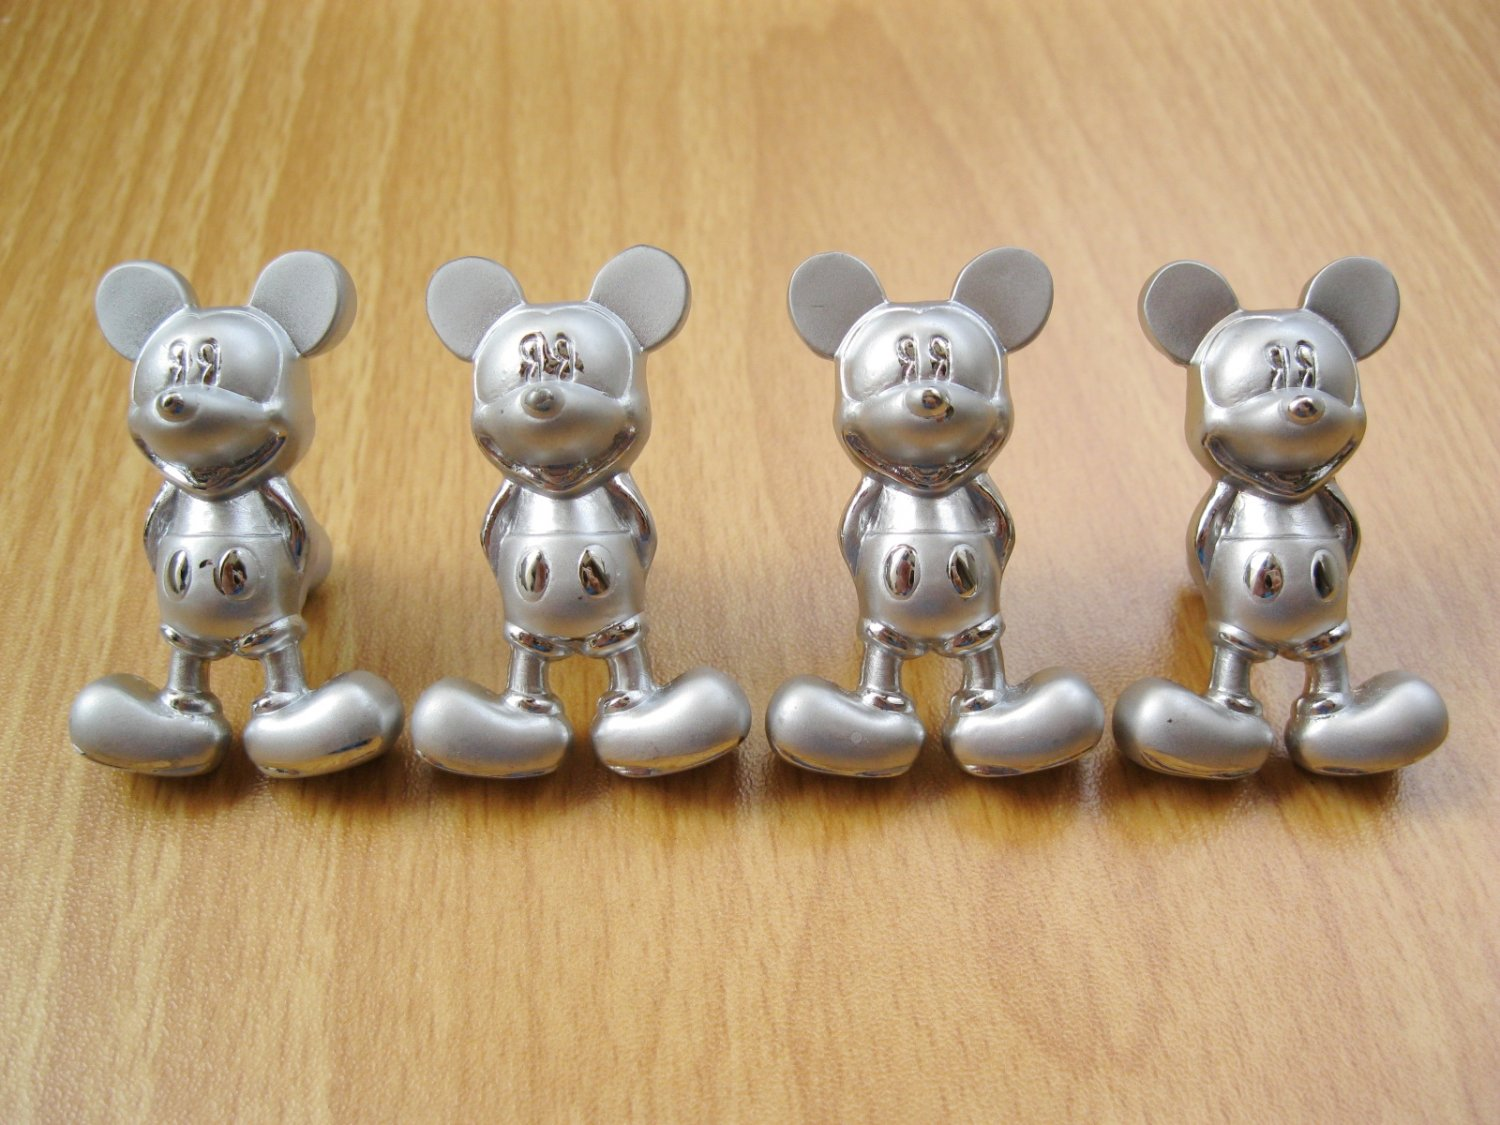 Kitchen Cabinet Handles 3 3/4 Mickey Mouse Metal Kitchen Cabinet Door Knobs Drawer Pulls